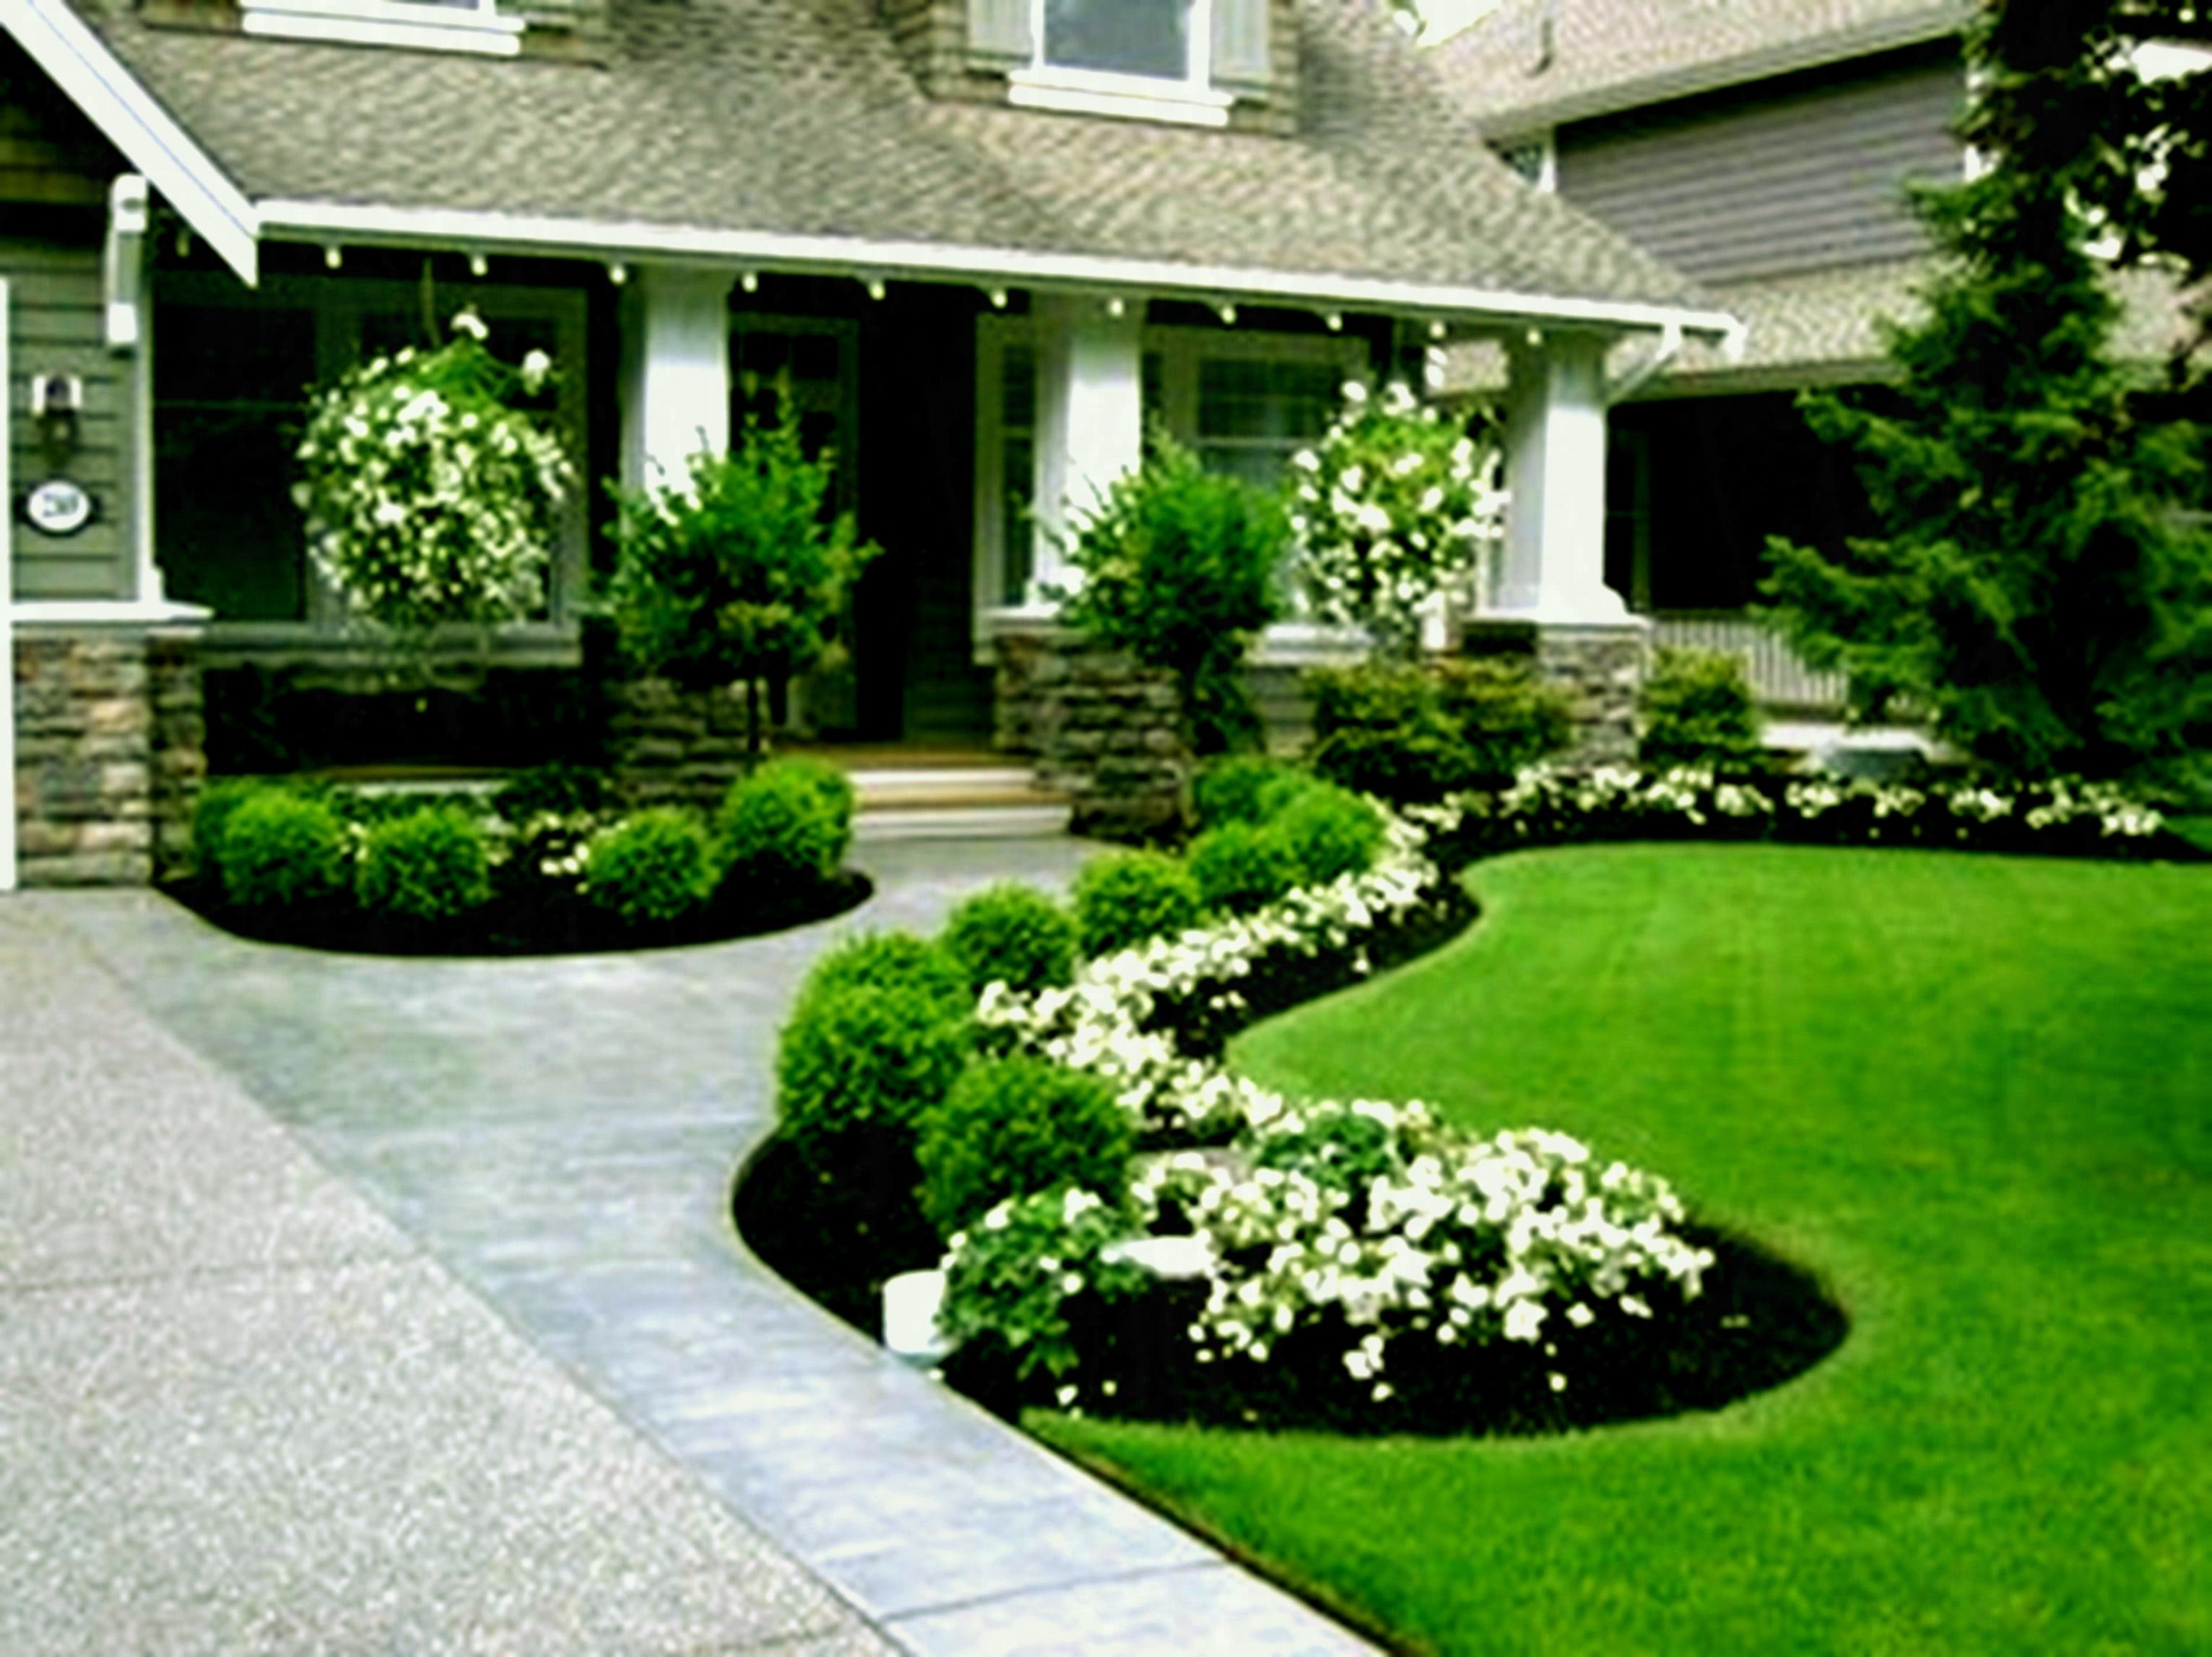 Low Maintenance Landscaping Ideas For Small Yards ... on Low Maintenance:cyizg0Gje0G= Backyard Design  id=18592